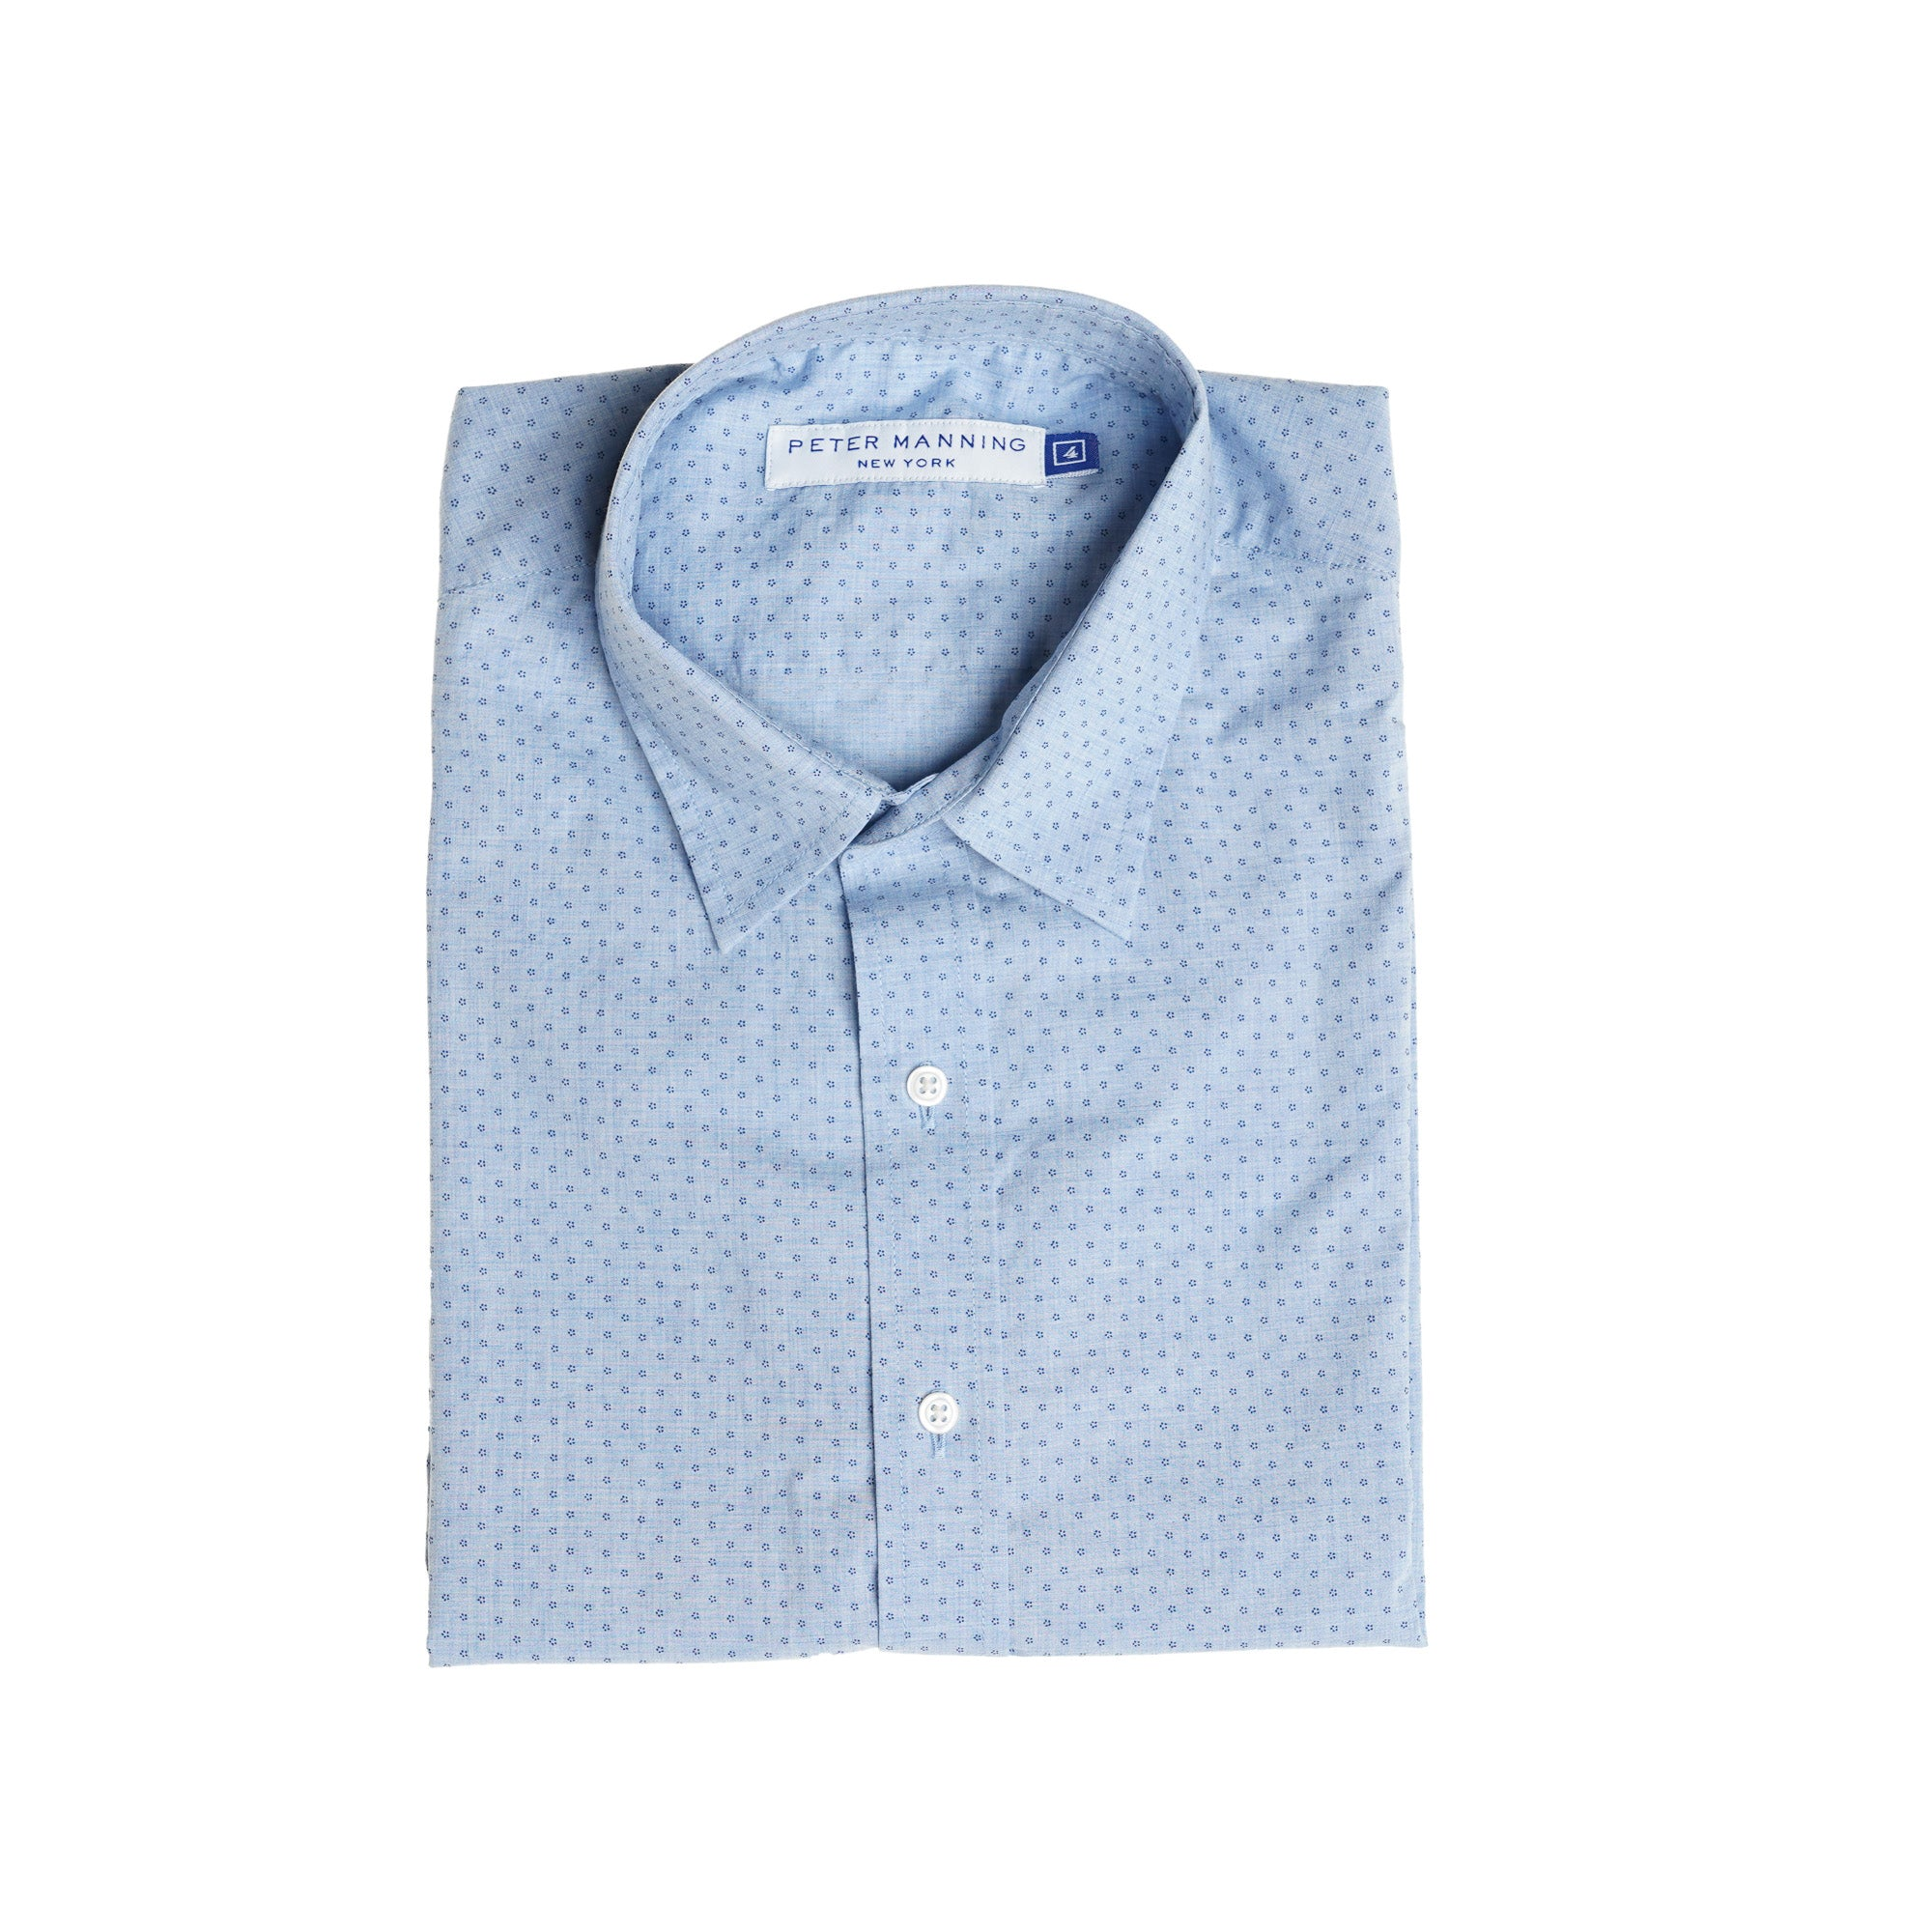 Weekend Printed Shirt Slim Fit - Blue Dot